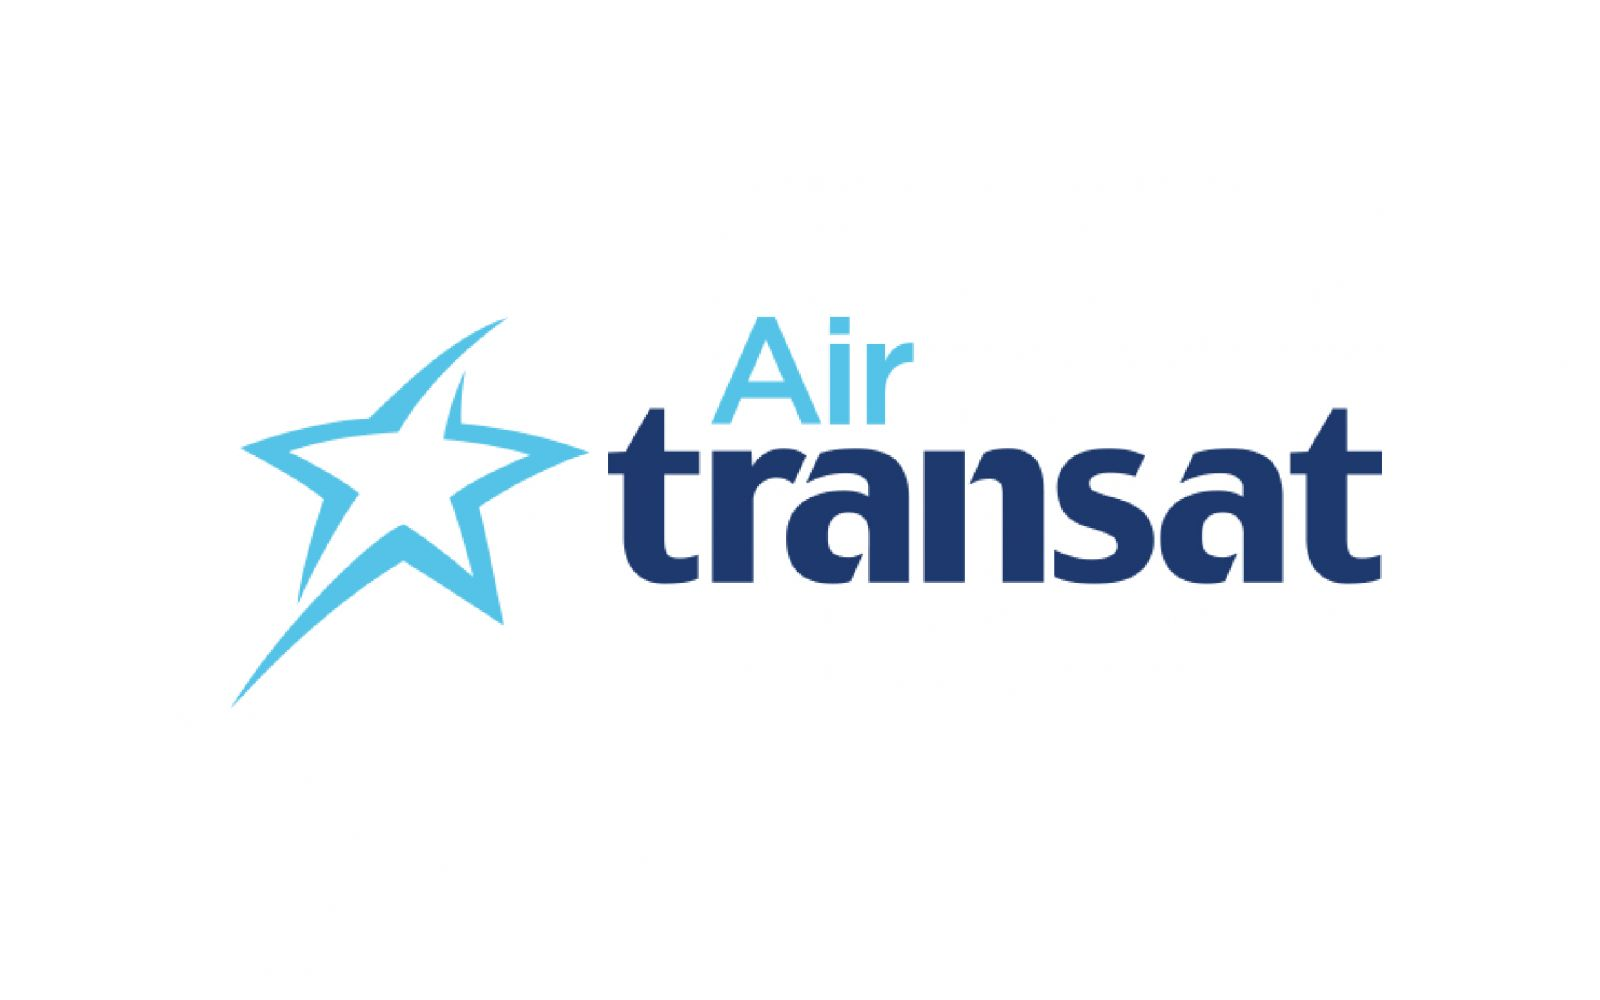 Supporting Air Transat in the new normal